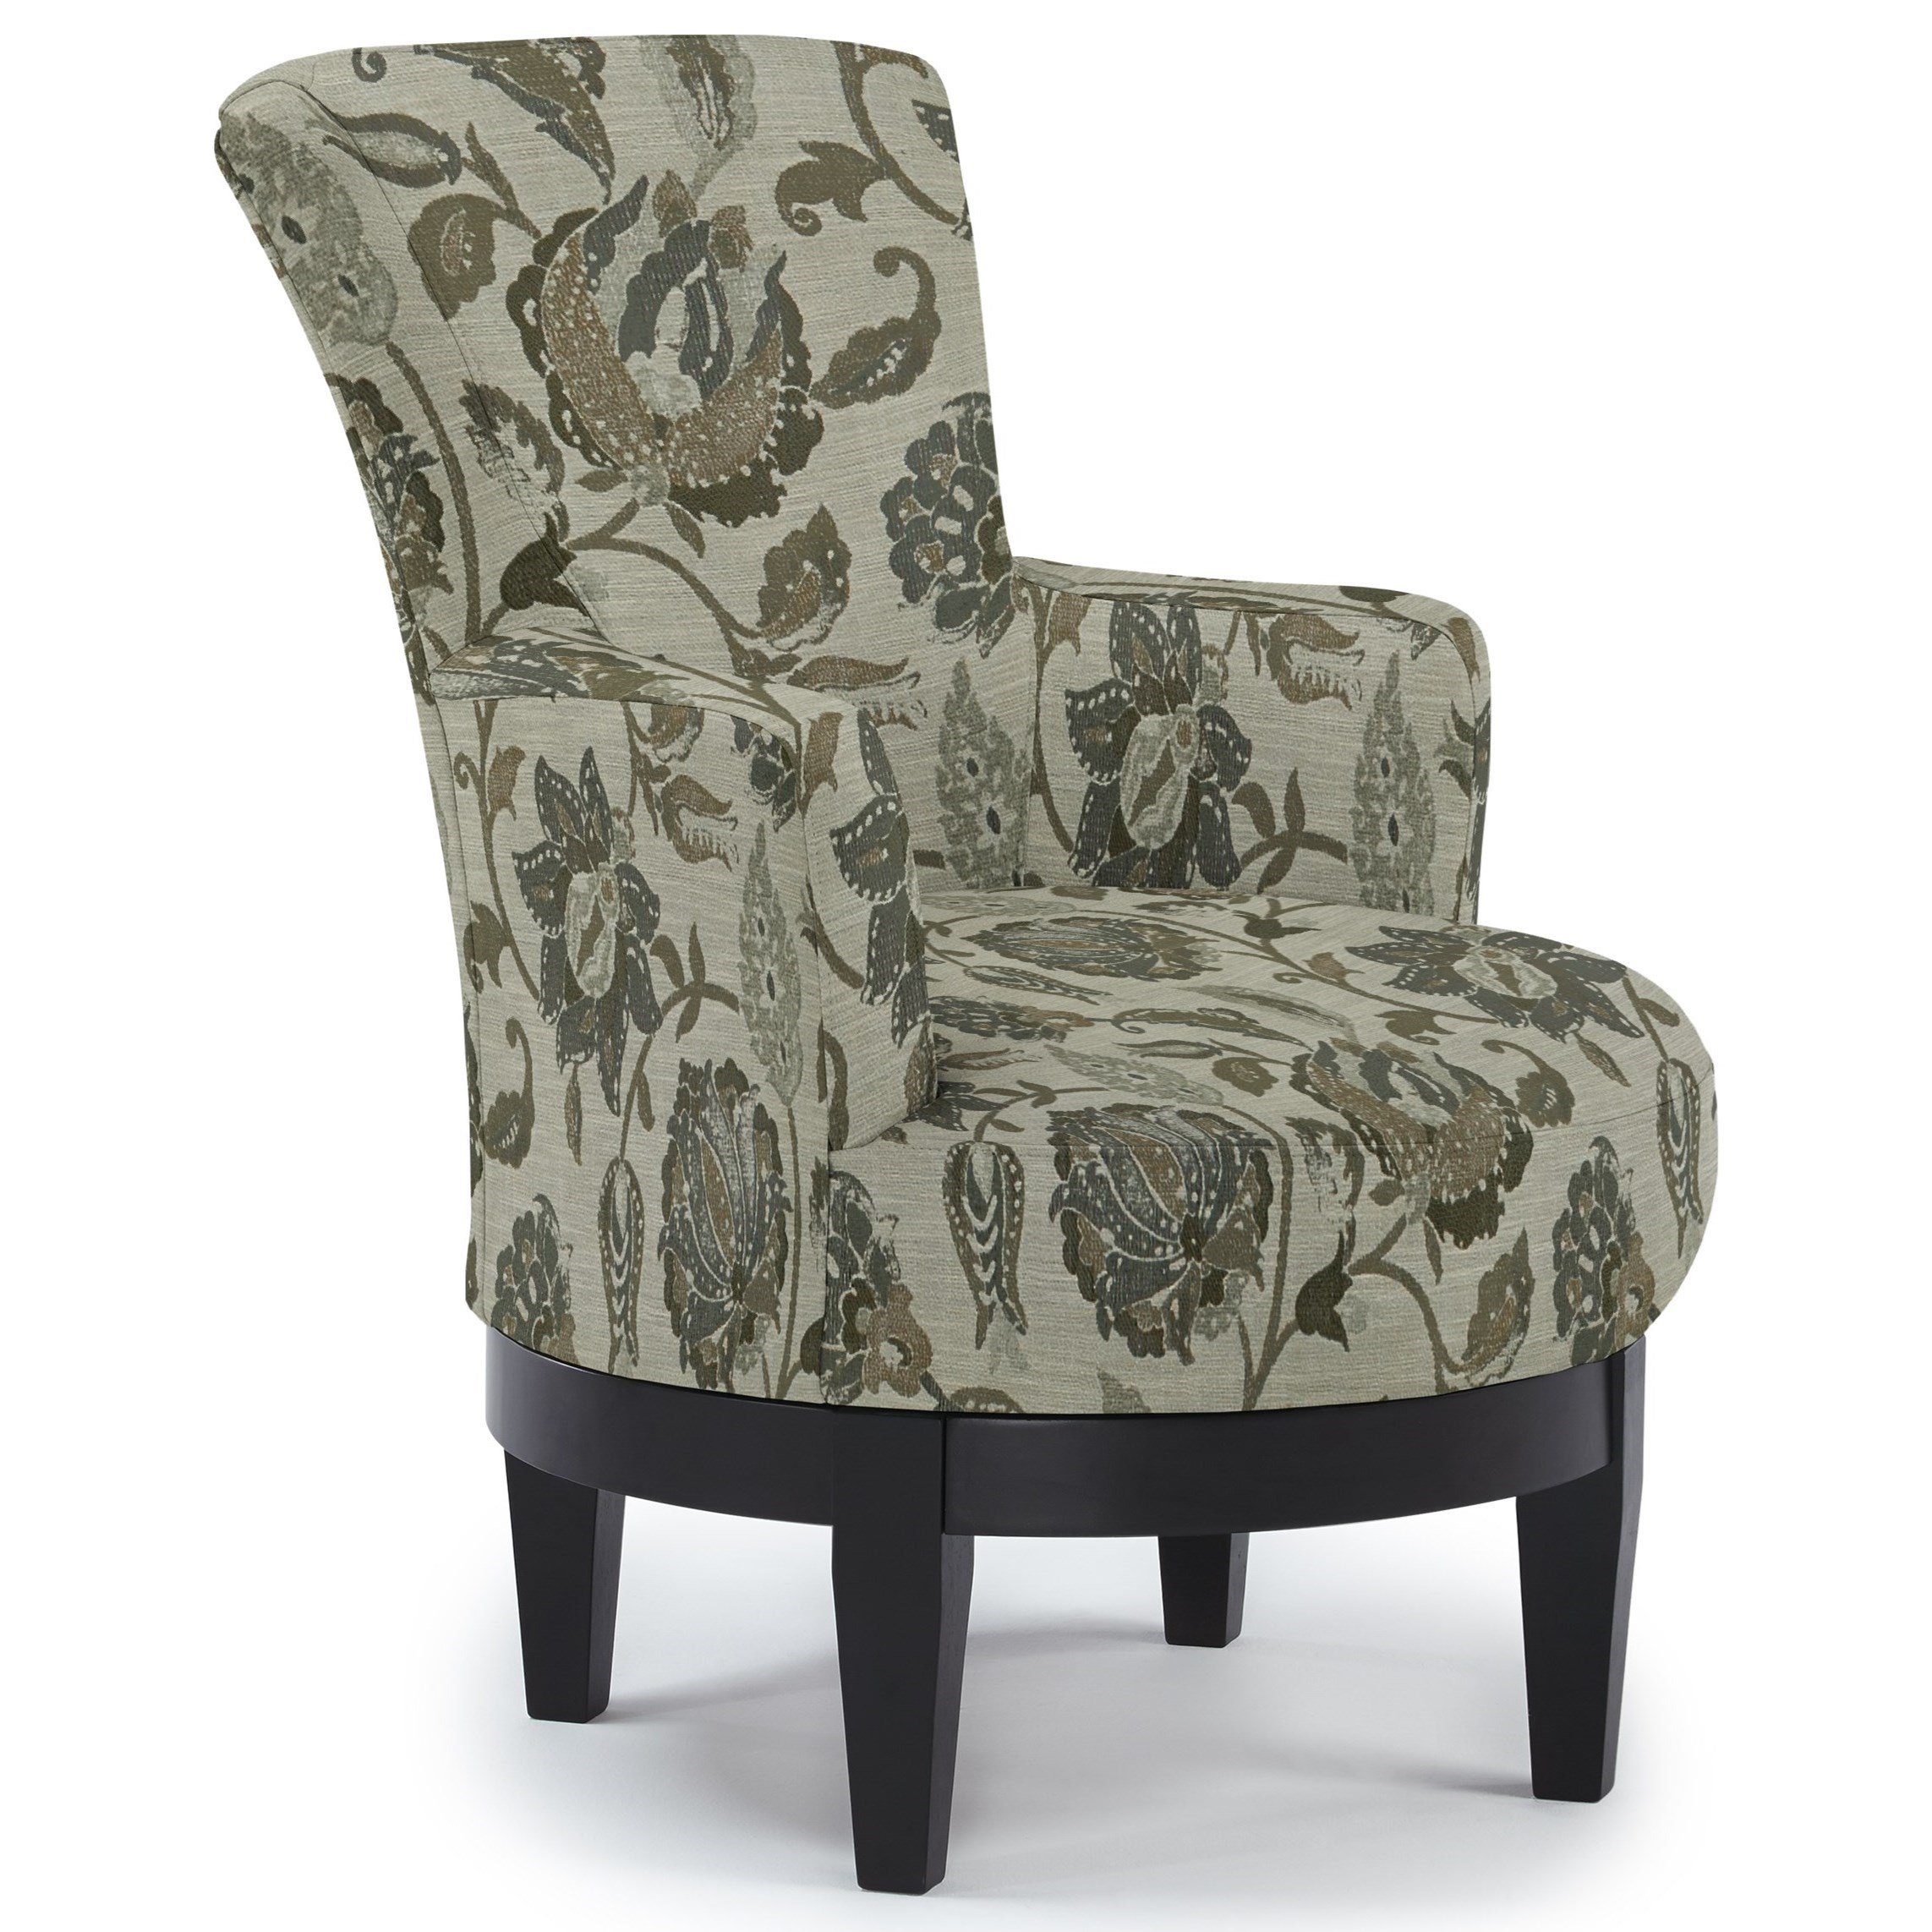 Chairs - Swivel Barrel Swivel Chair by Best Home Furnishings at EFO Furniture Outlet